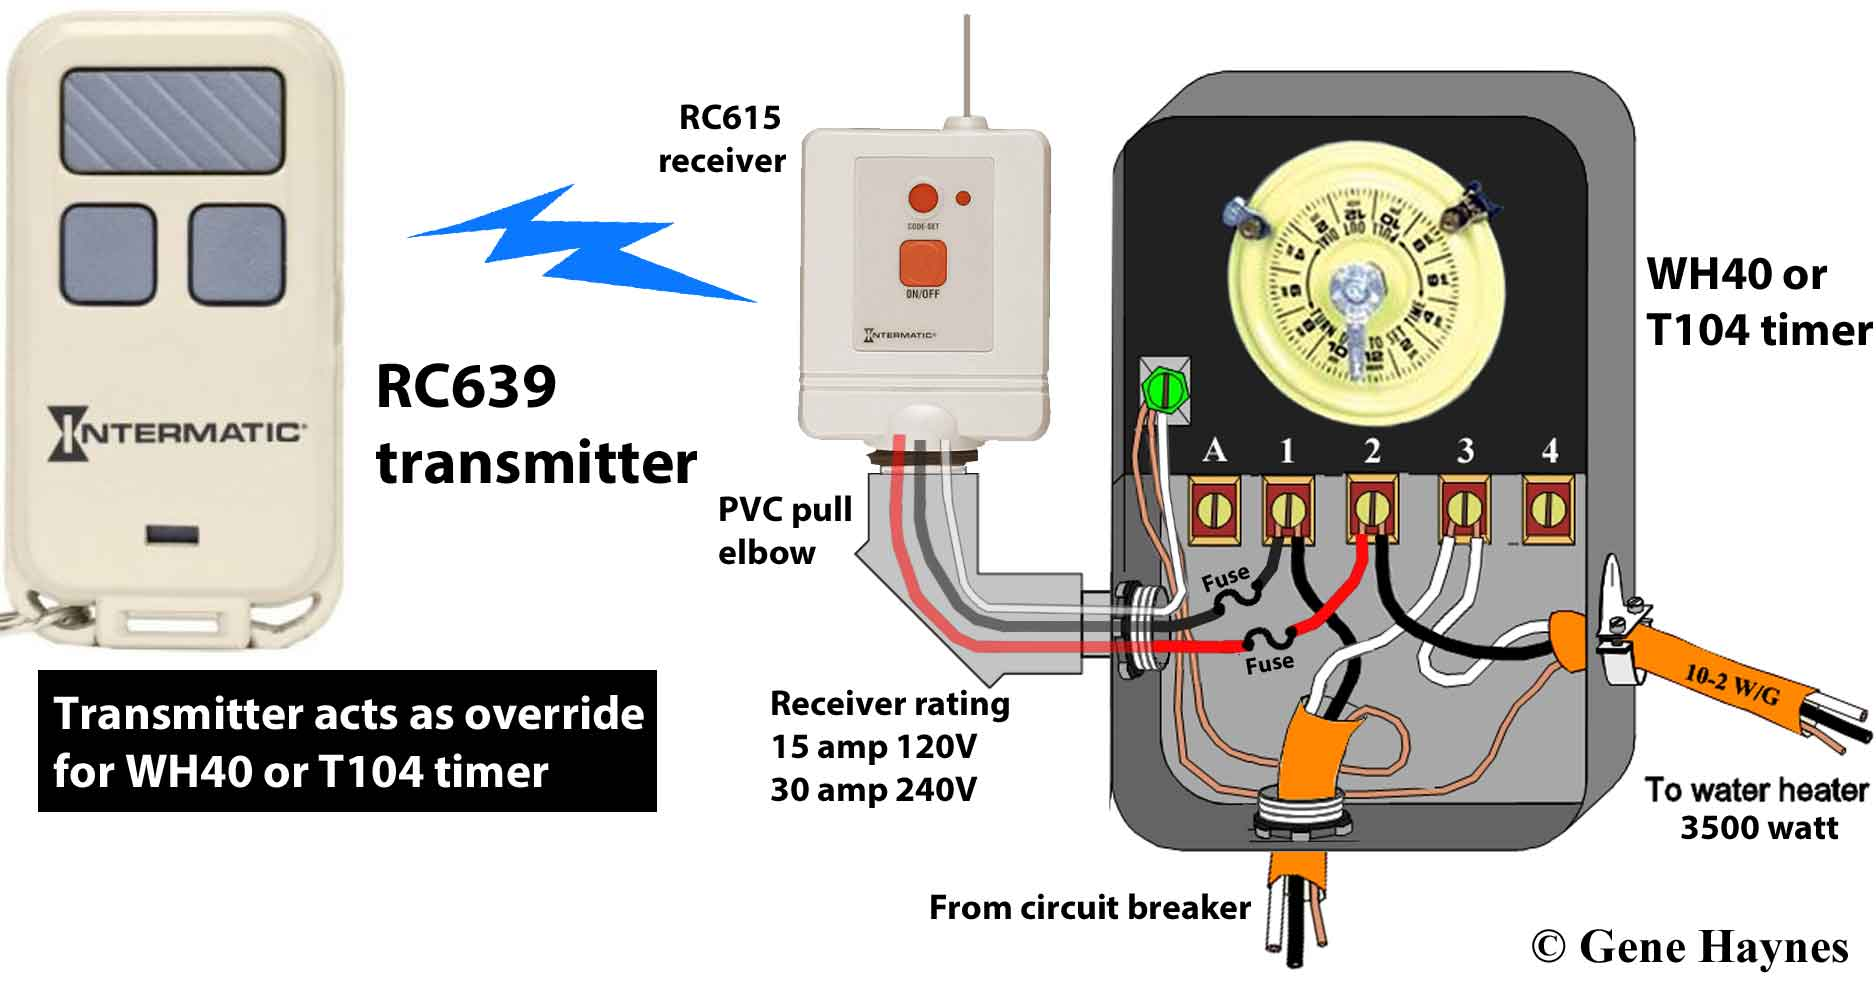 RC939 transmitter RC613 receiver WH40 or T104 timer ...